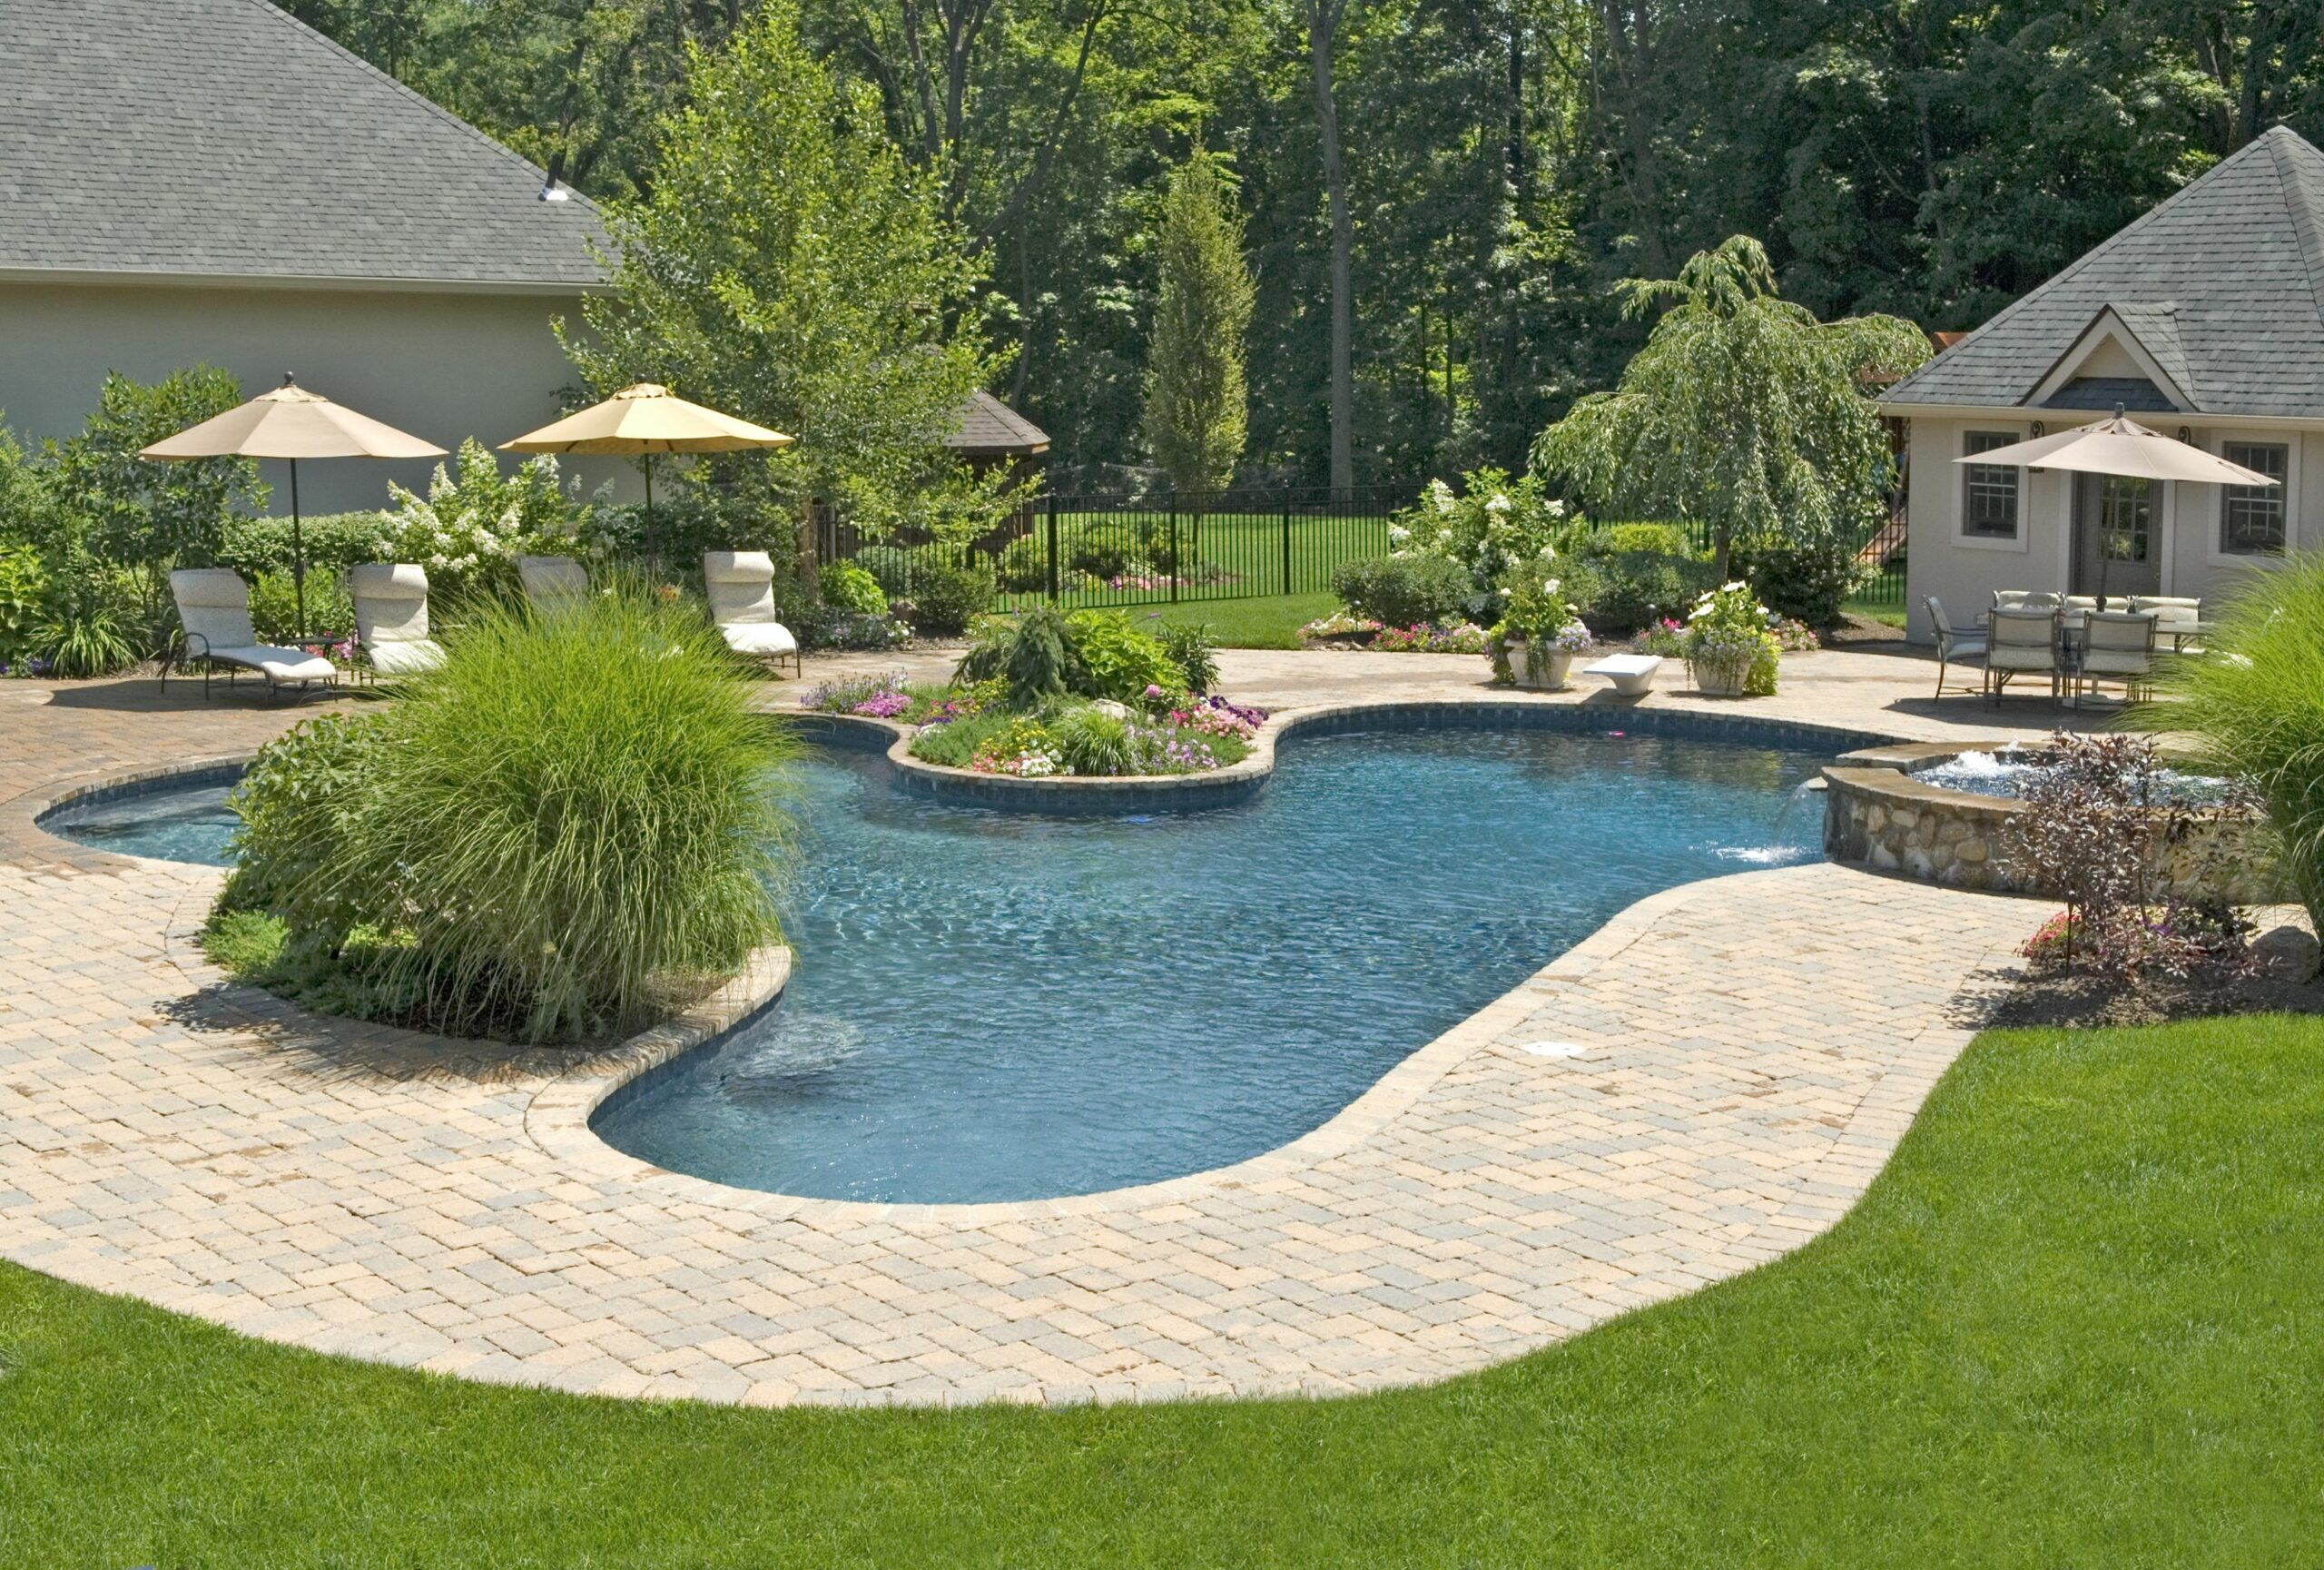 Backyard Pool Ideas Landscaping Pictures On A Budget Simple Home ...